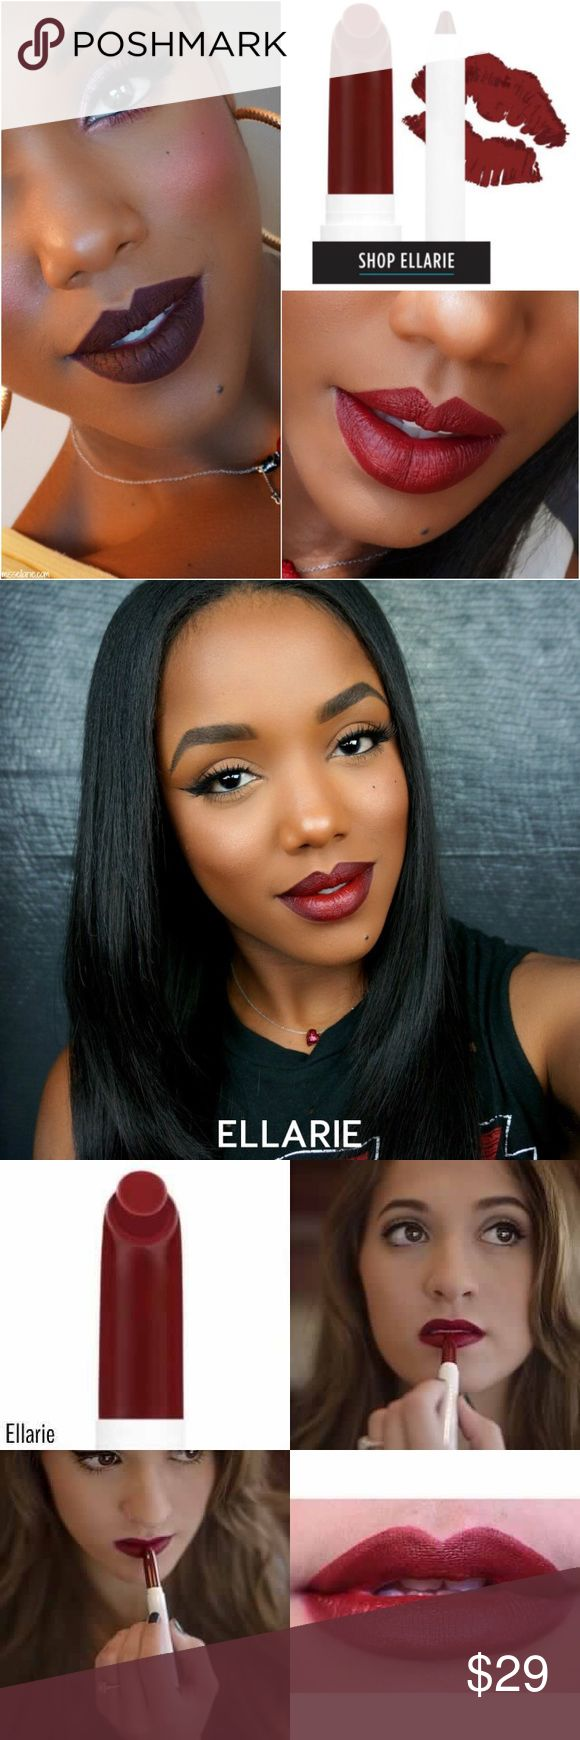 """Nip/Ellarie LippieStix+Ellarie LippiePencil/Set NIP/COLOURPOP Ellarie 2-Piece Set/CREATED for this very Beautiful Women/Ellarie/& like the LADY/it's a DEEP SULTRY CRANBERRY w matte finish. Directions: """"Wear w Confidence""""COLOURPOP  made it easy 4-U– every Lippie Stix + matching Lippie Pencil that was designed 2 match its partner perfectly. However, we're not trying 2-B a bossy pants & tell U creative lovelies what 2 do. So, if U want 2 create an Ombre lip look or something, have fun…"""